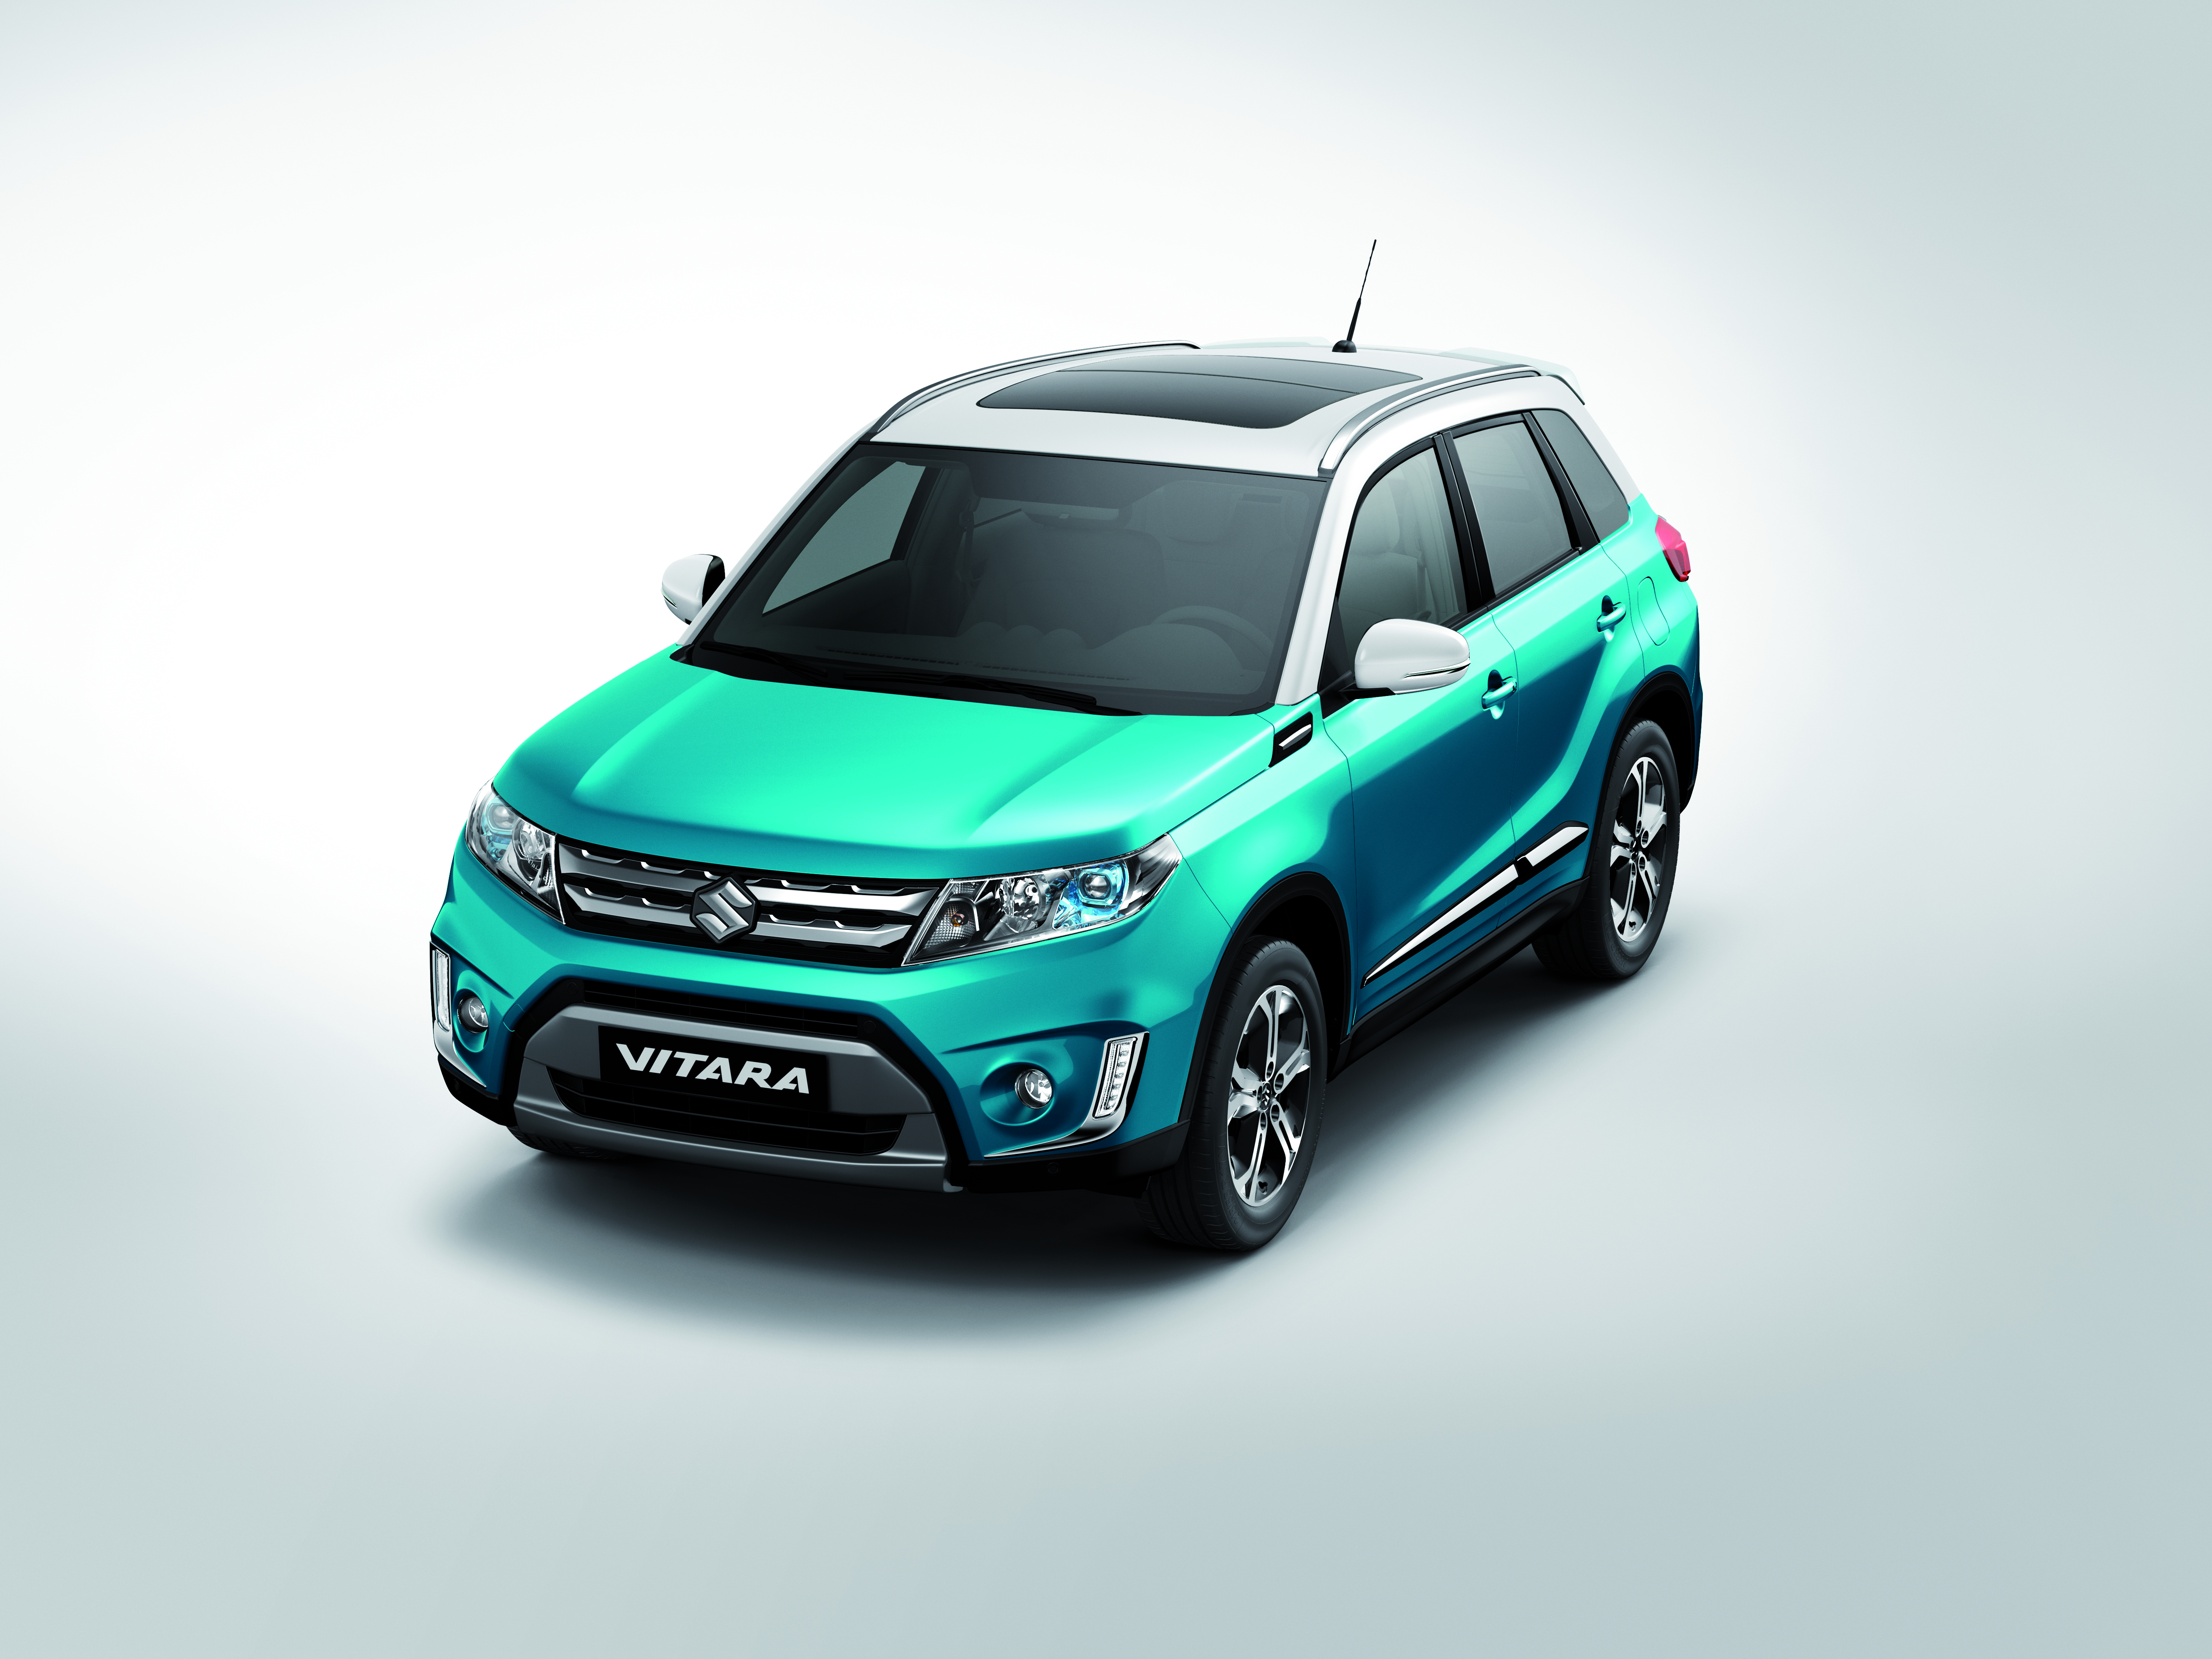 Suzuki Grand Vitara Patrignani Group